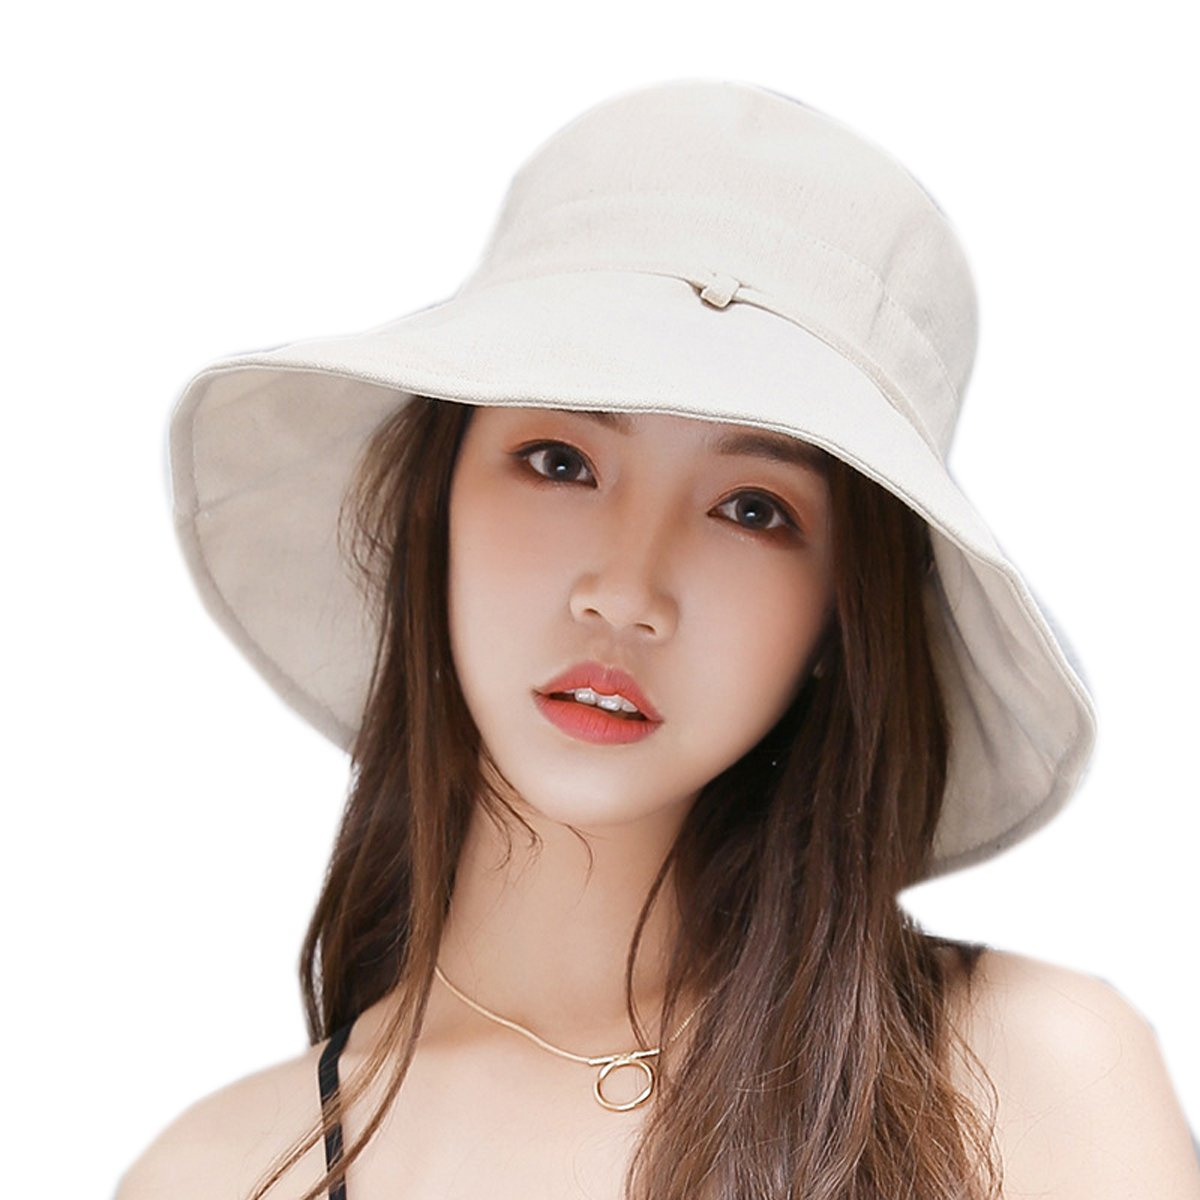 HAPEE Womens Sun Hat,Both Sides wear,UPF 50+ Beach Hat Foldable Wide Brim by HAPEE (Image #1)